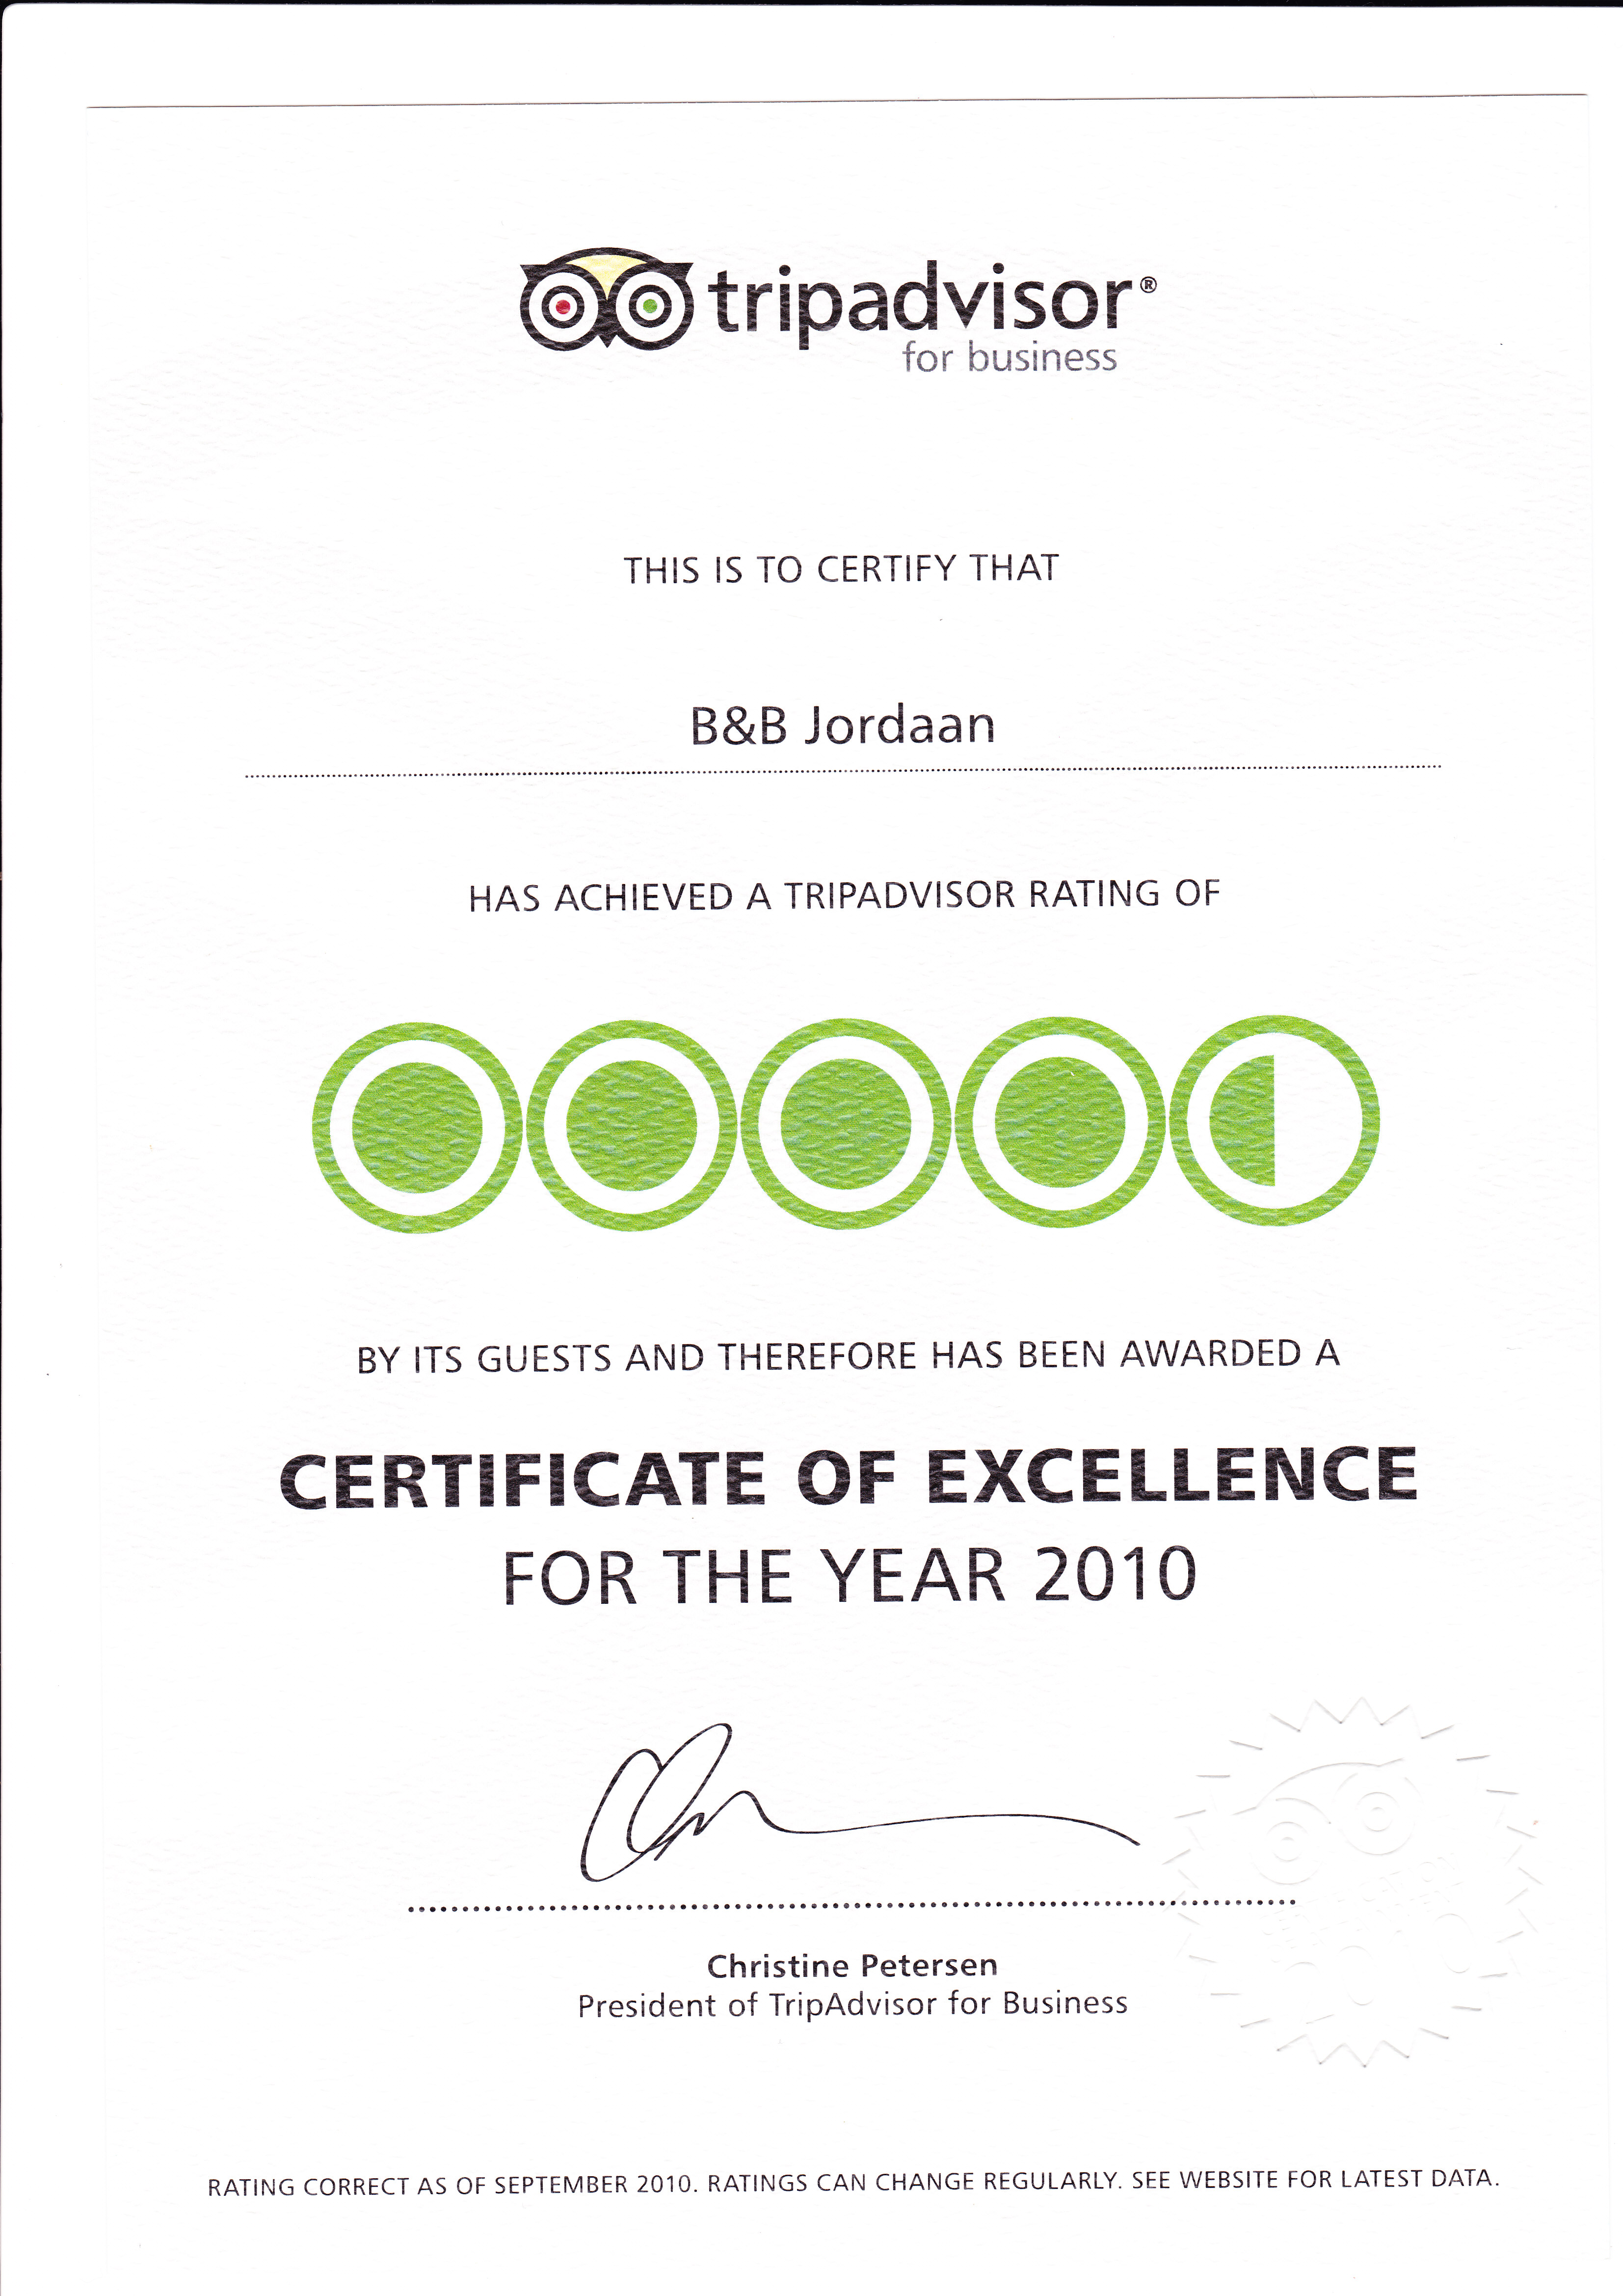 'Certificate of Excellence 2010', Tripadvisor award (3K)